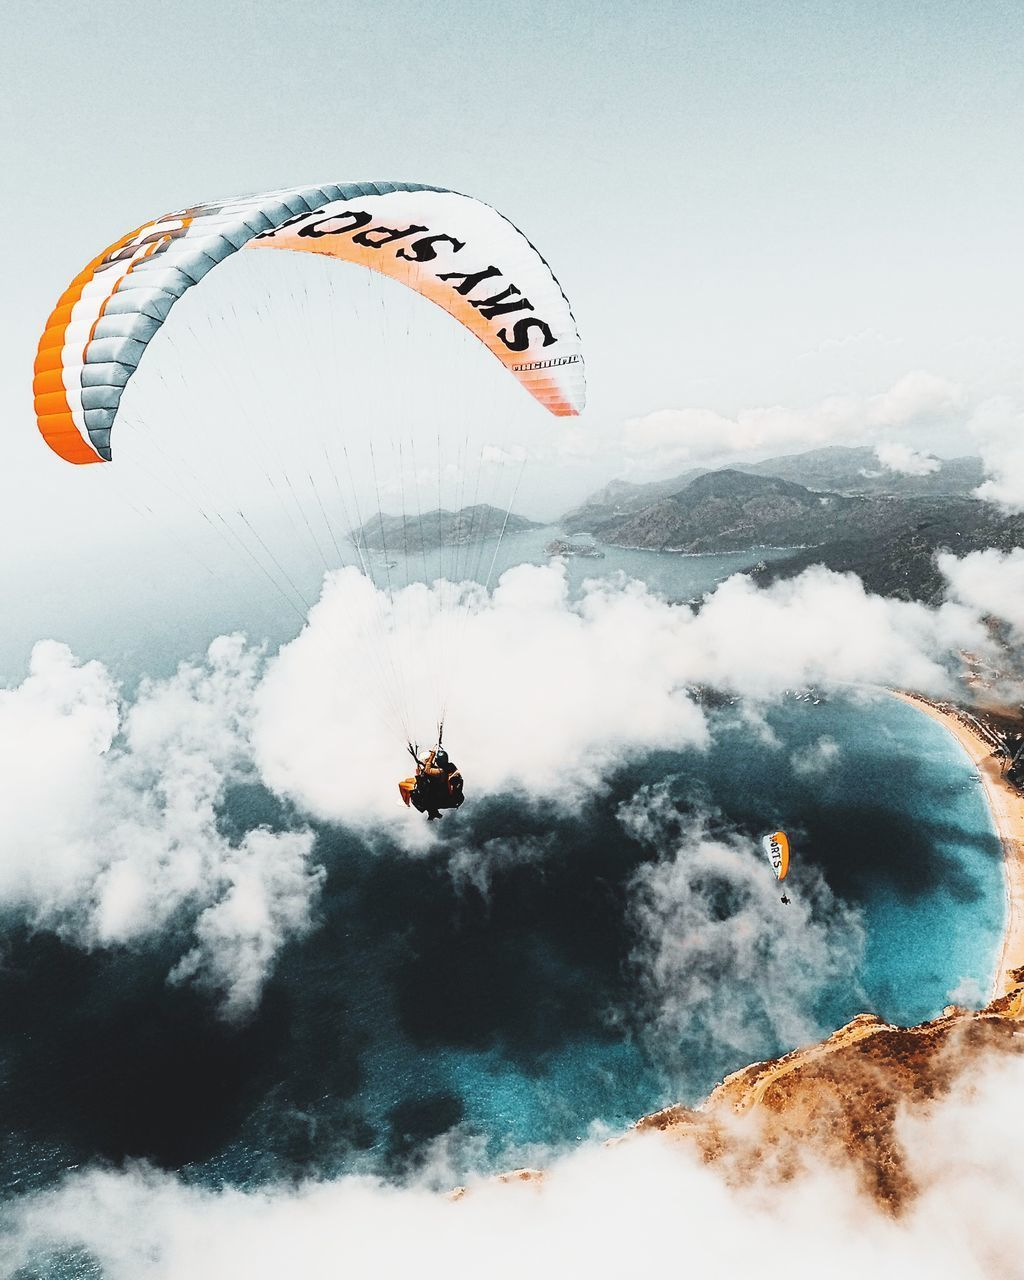 AERIAL VIEW OF PERSON PARAGLIDING